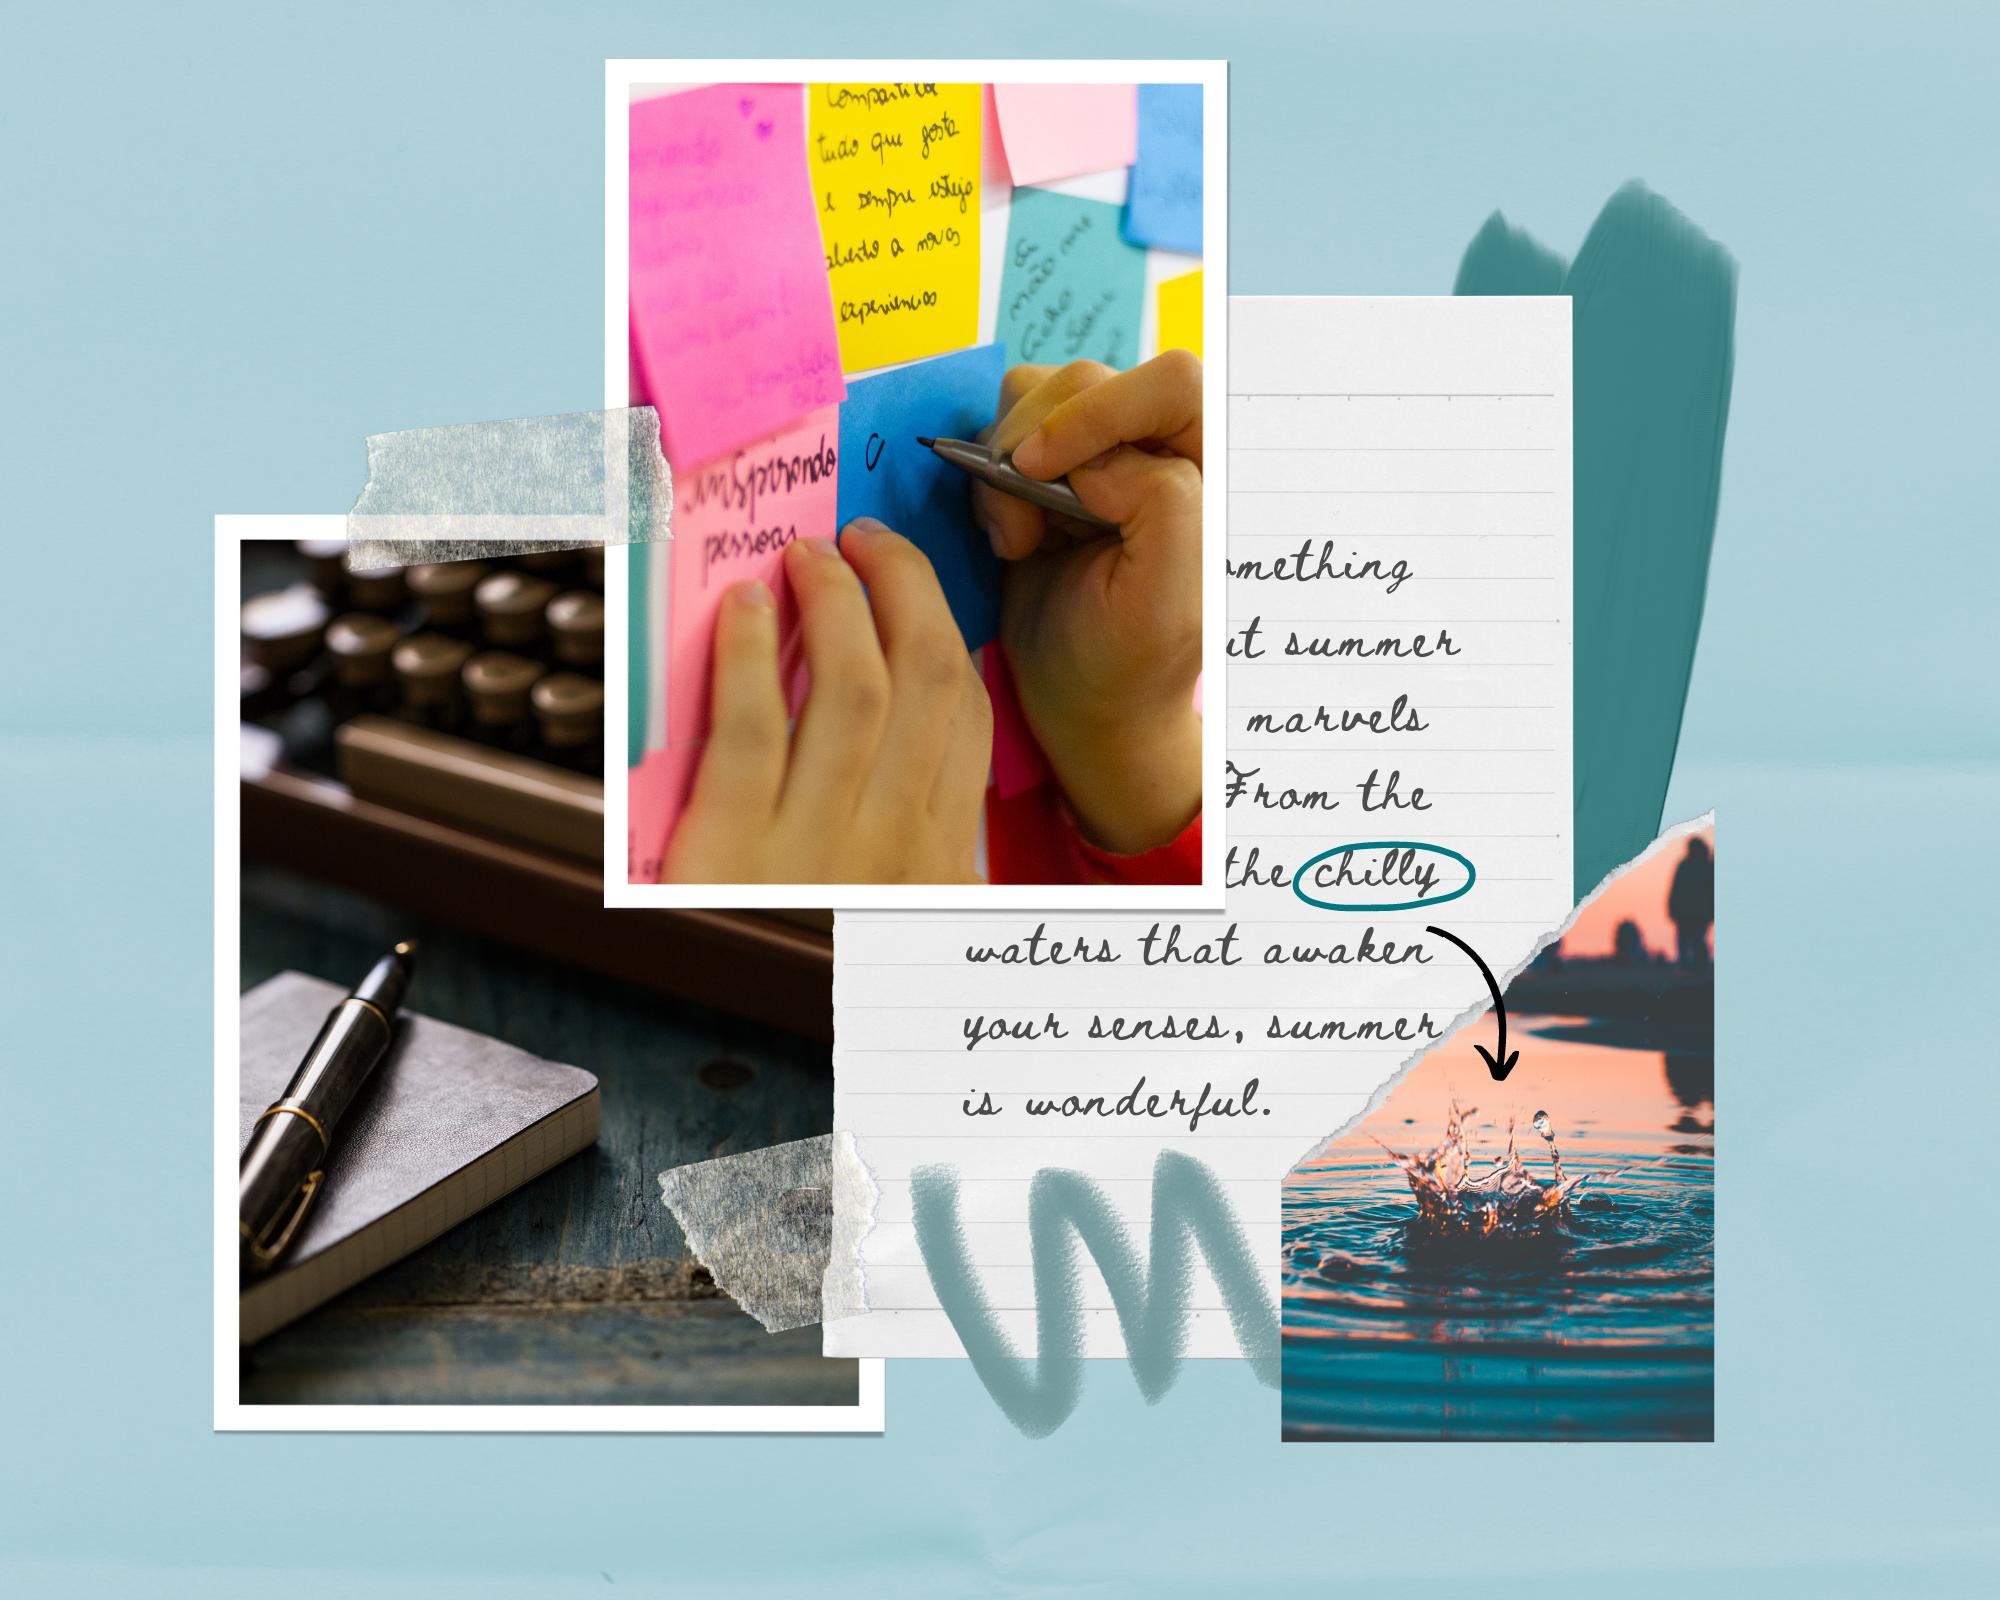 Mood board showing tips on how to write a novel